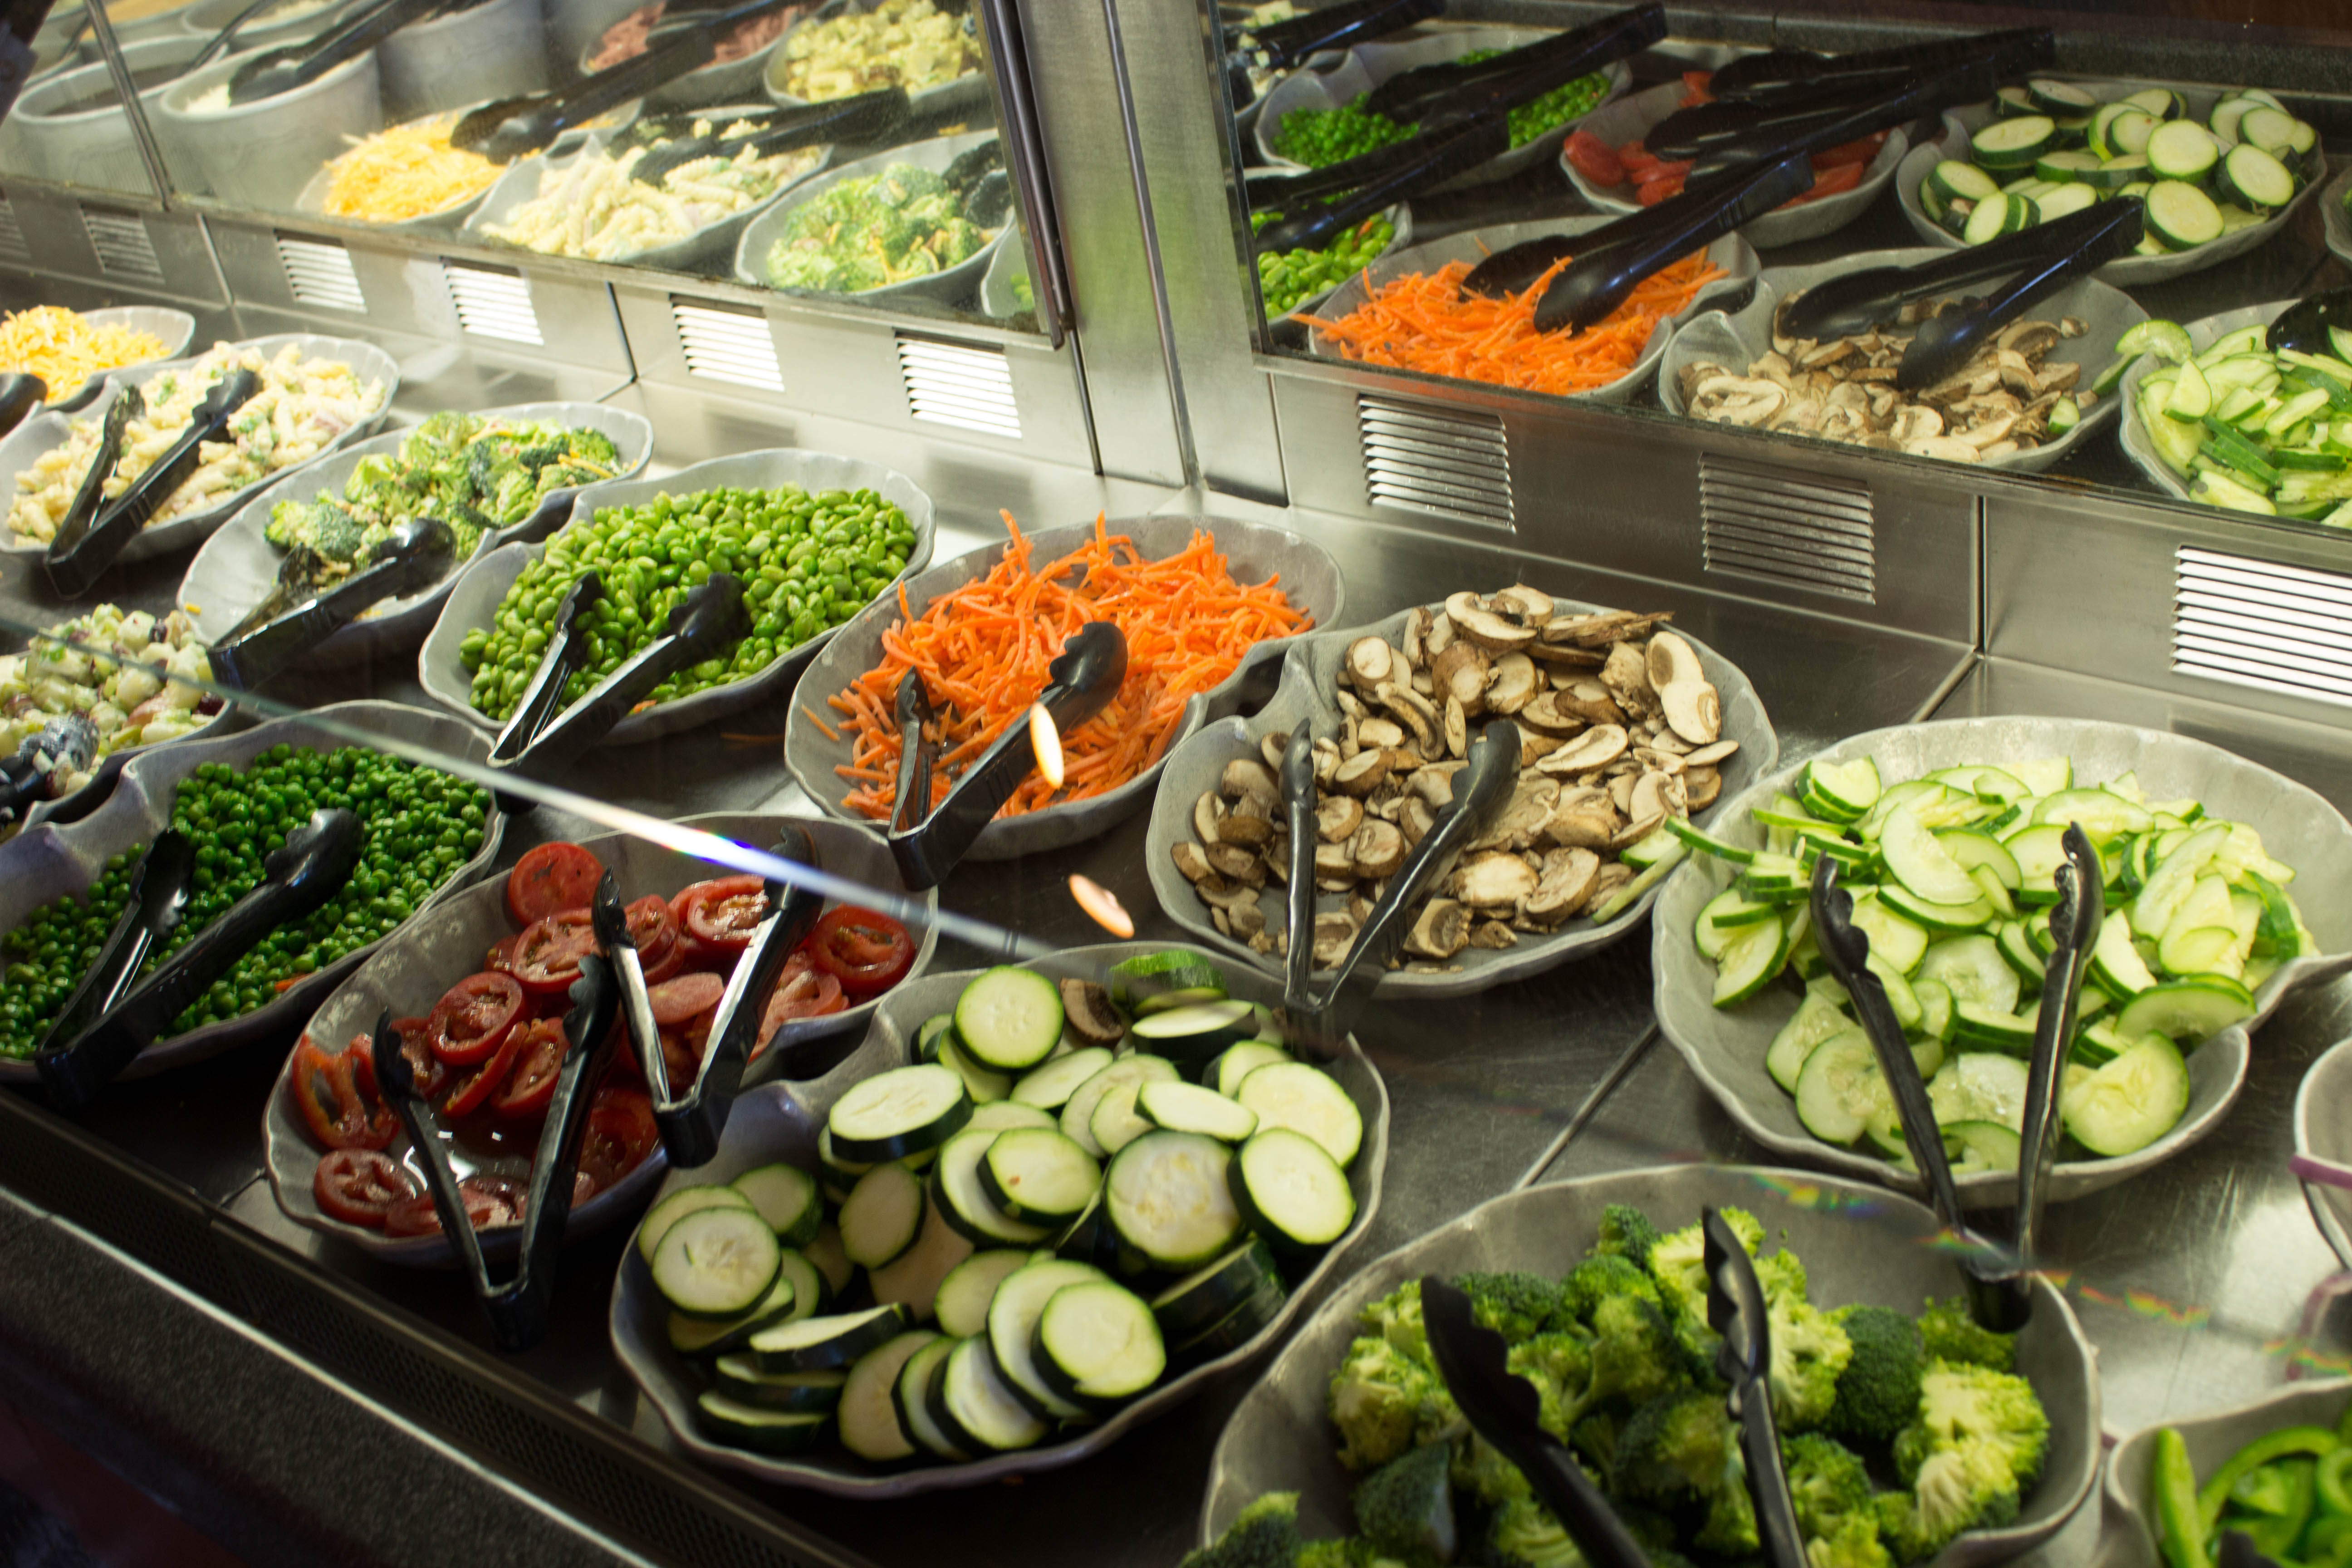 The Beauty And Bounty Of The Steakhouse Salad Bar Eater